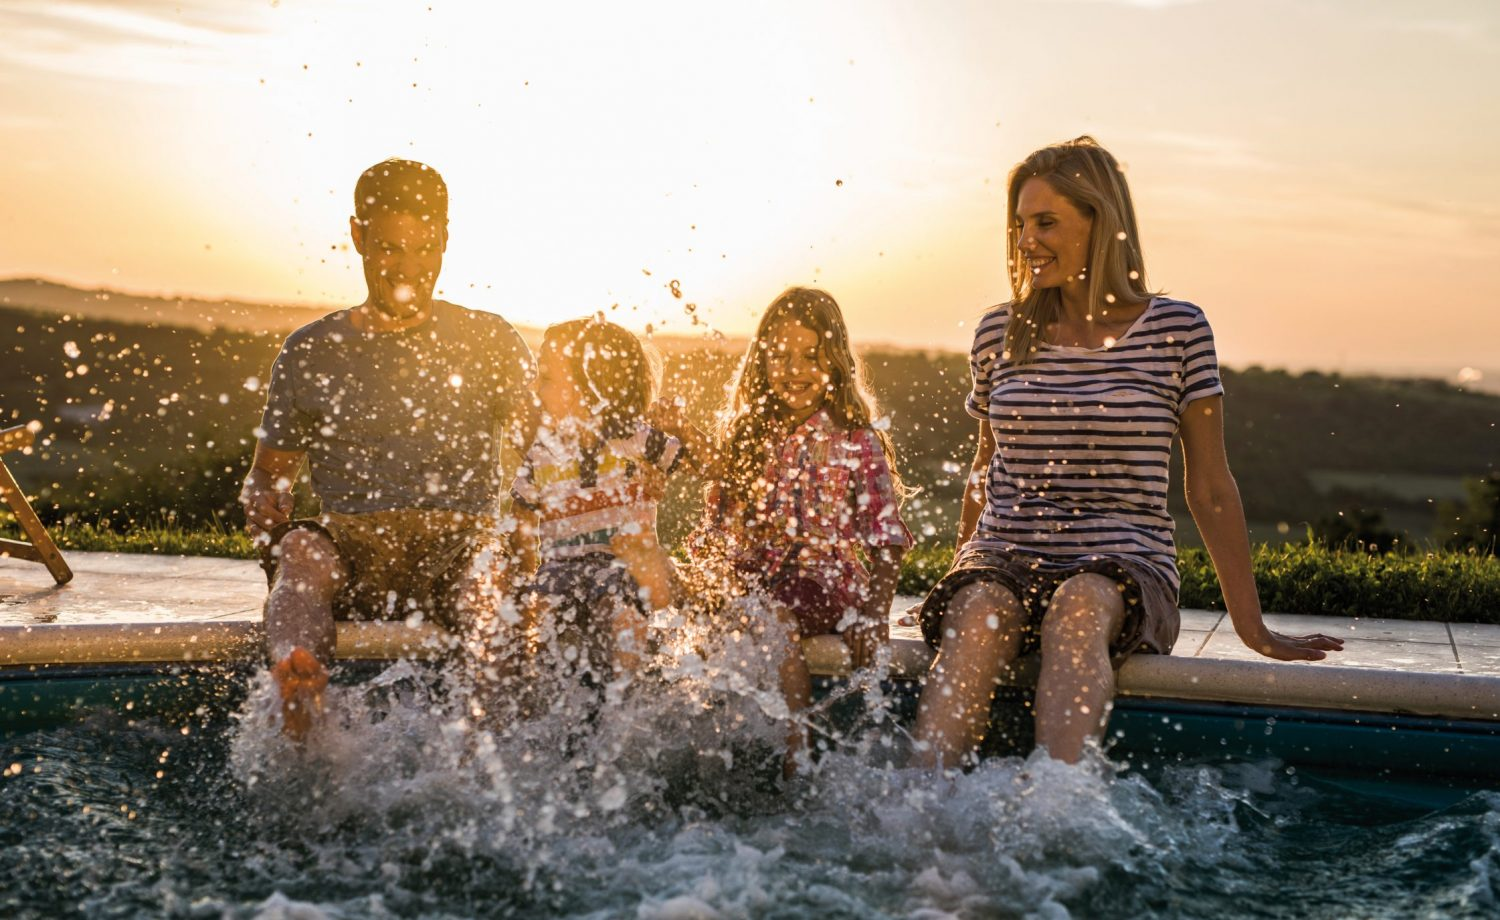 Playful Family Having Fun While Splashing Water From The Pool At Sunset.